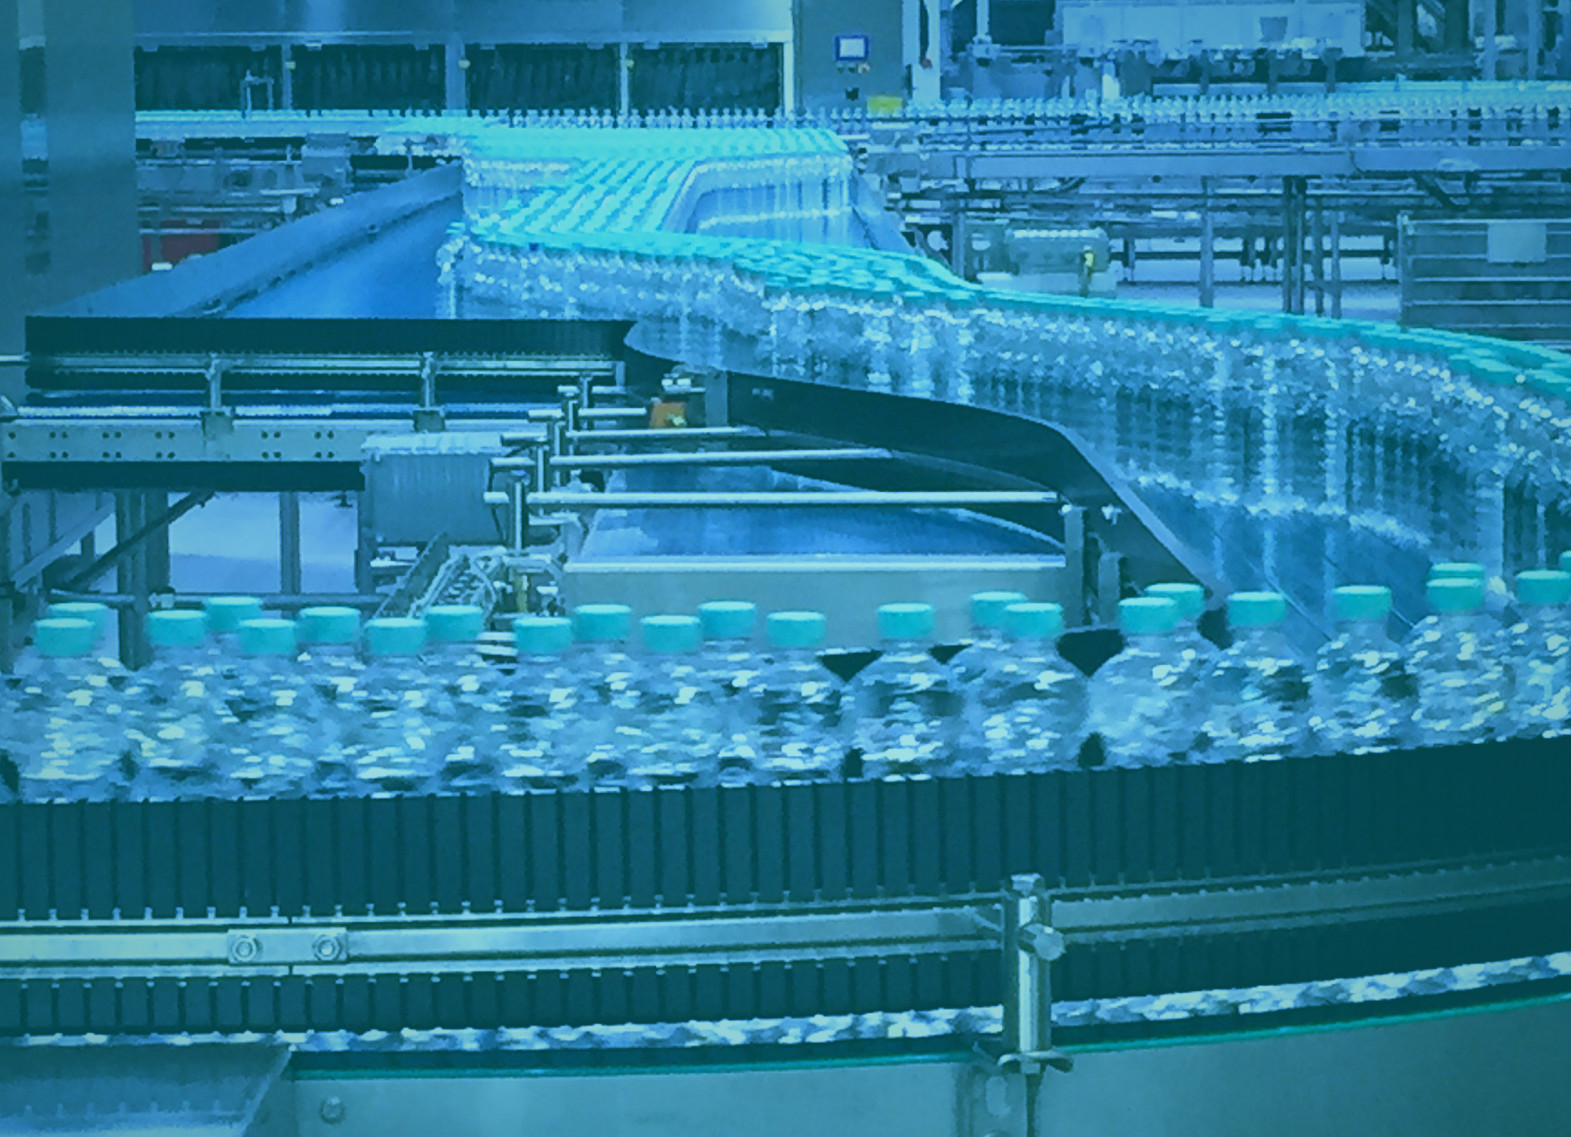 BackGround_PET_Conveyor24_2.jpg